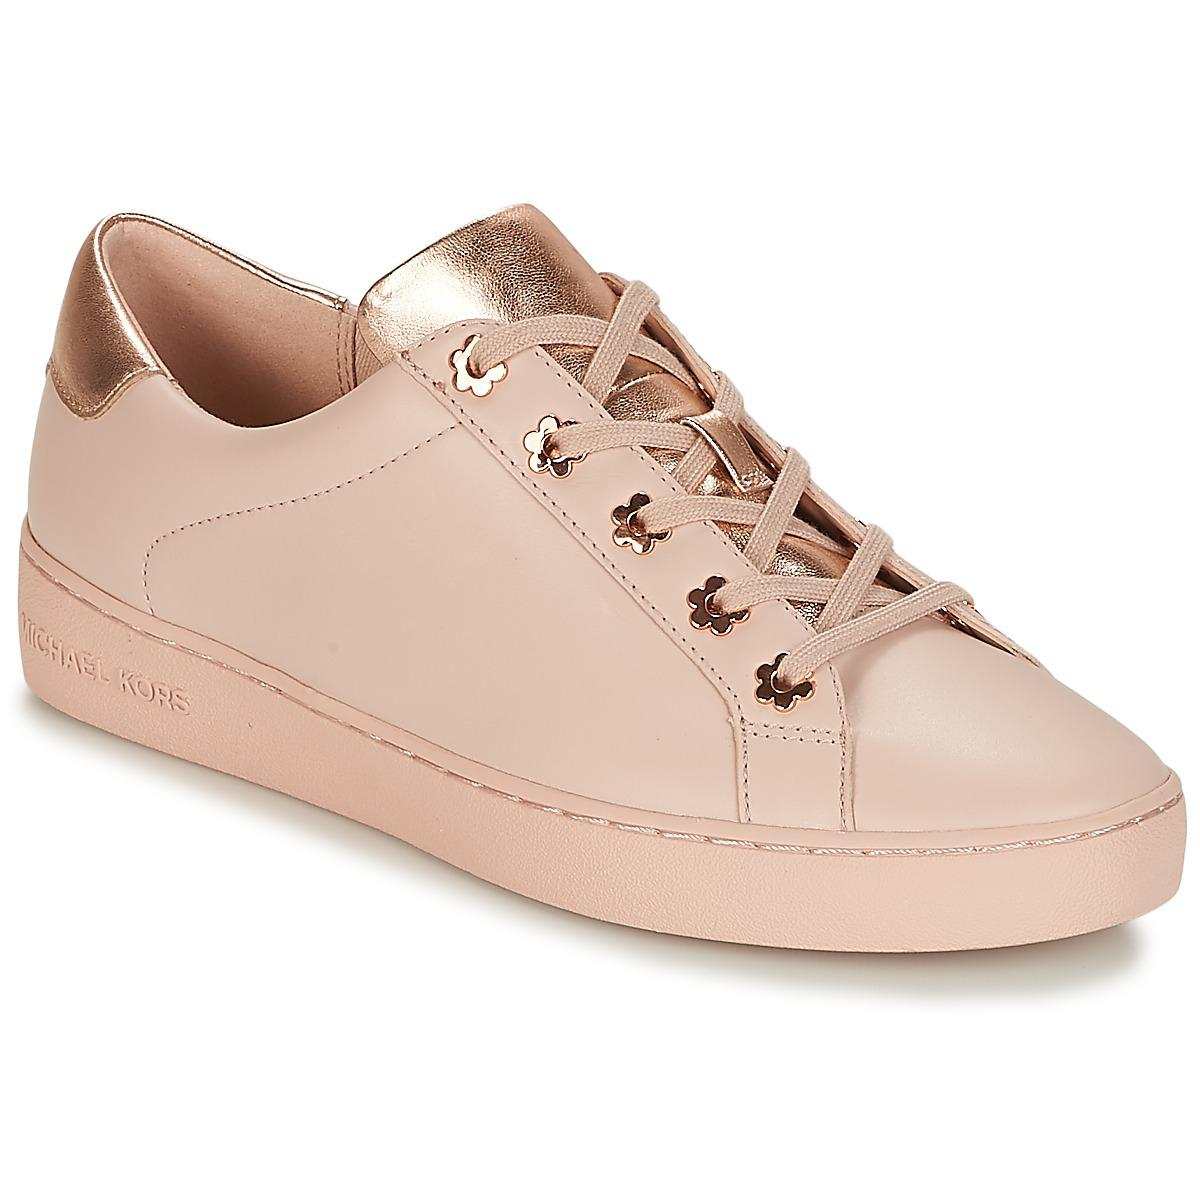 c3c92f3f3141 MICHAEL Michael Kors Irving Women s Shoes (trainers) In Pink in Pink ...